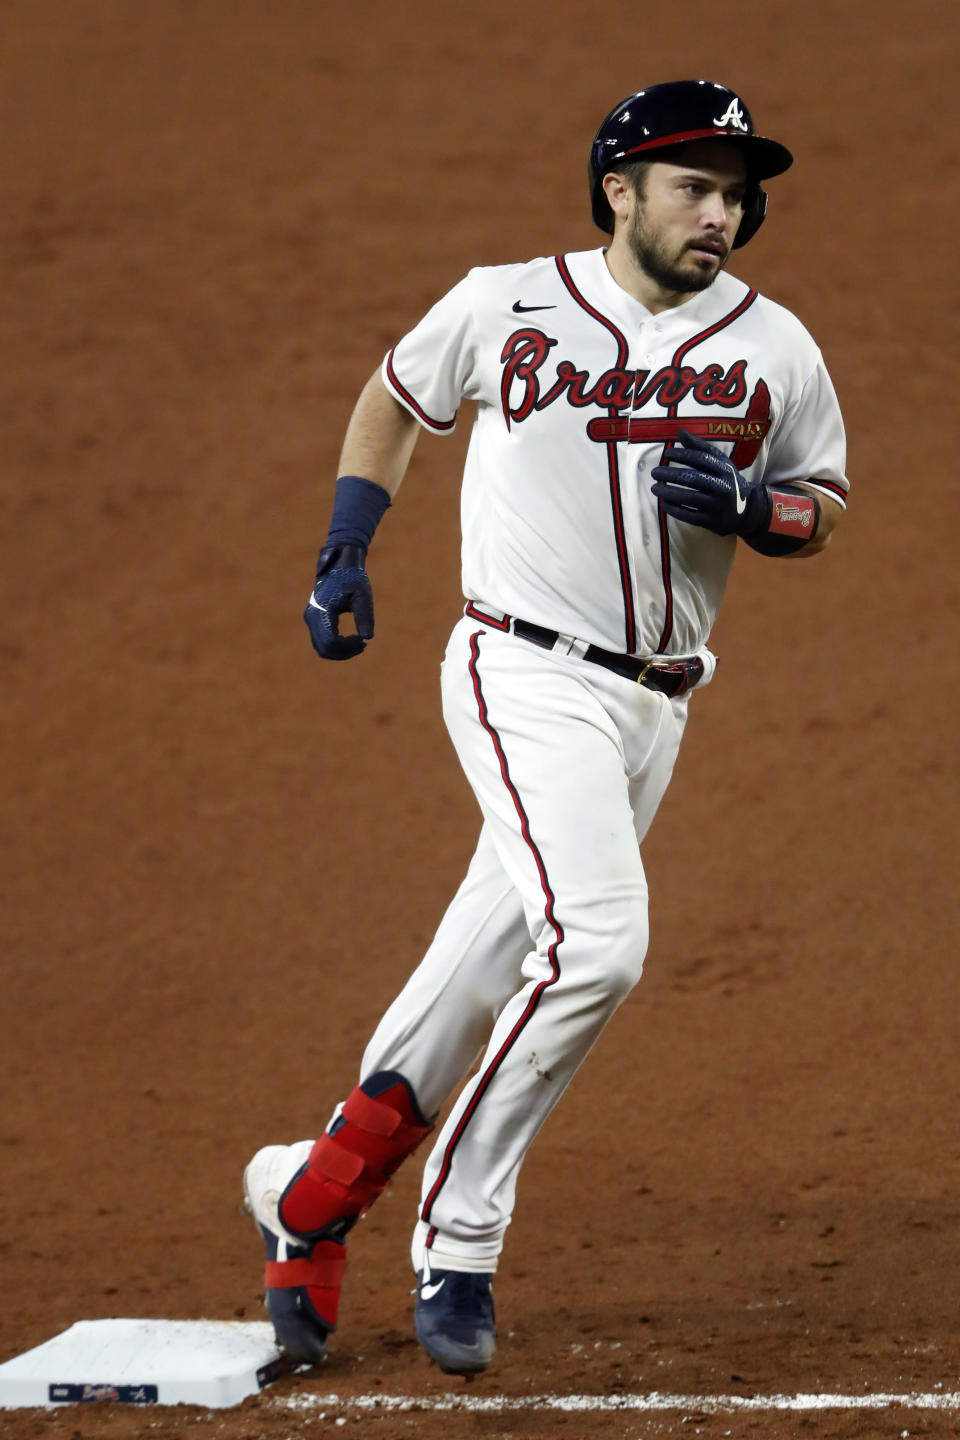 Atlanta Braves' Travis d'Arnaud rounds third base after hitting a home run in the fifth inning of a baseball game against the New York Mets Monday, Aug. 3, 2020, in Atlanta. (AP Photo/John Bazemore)